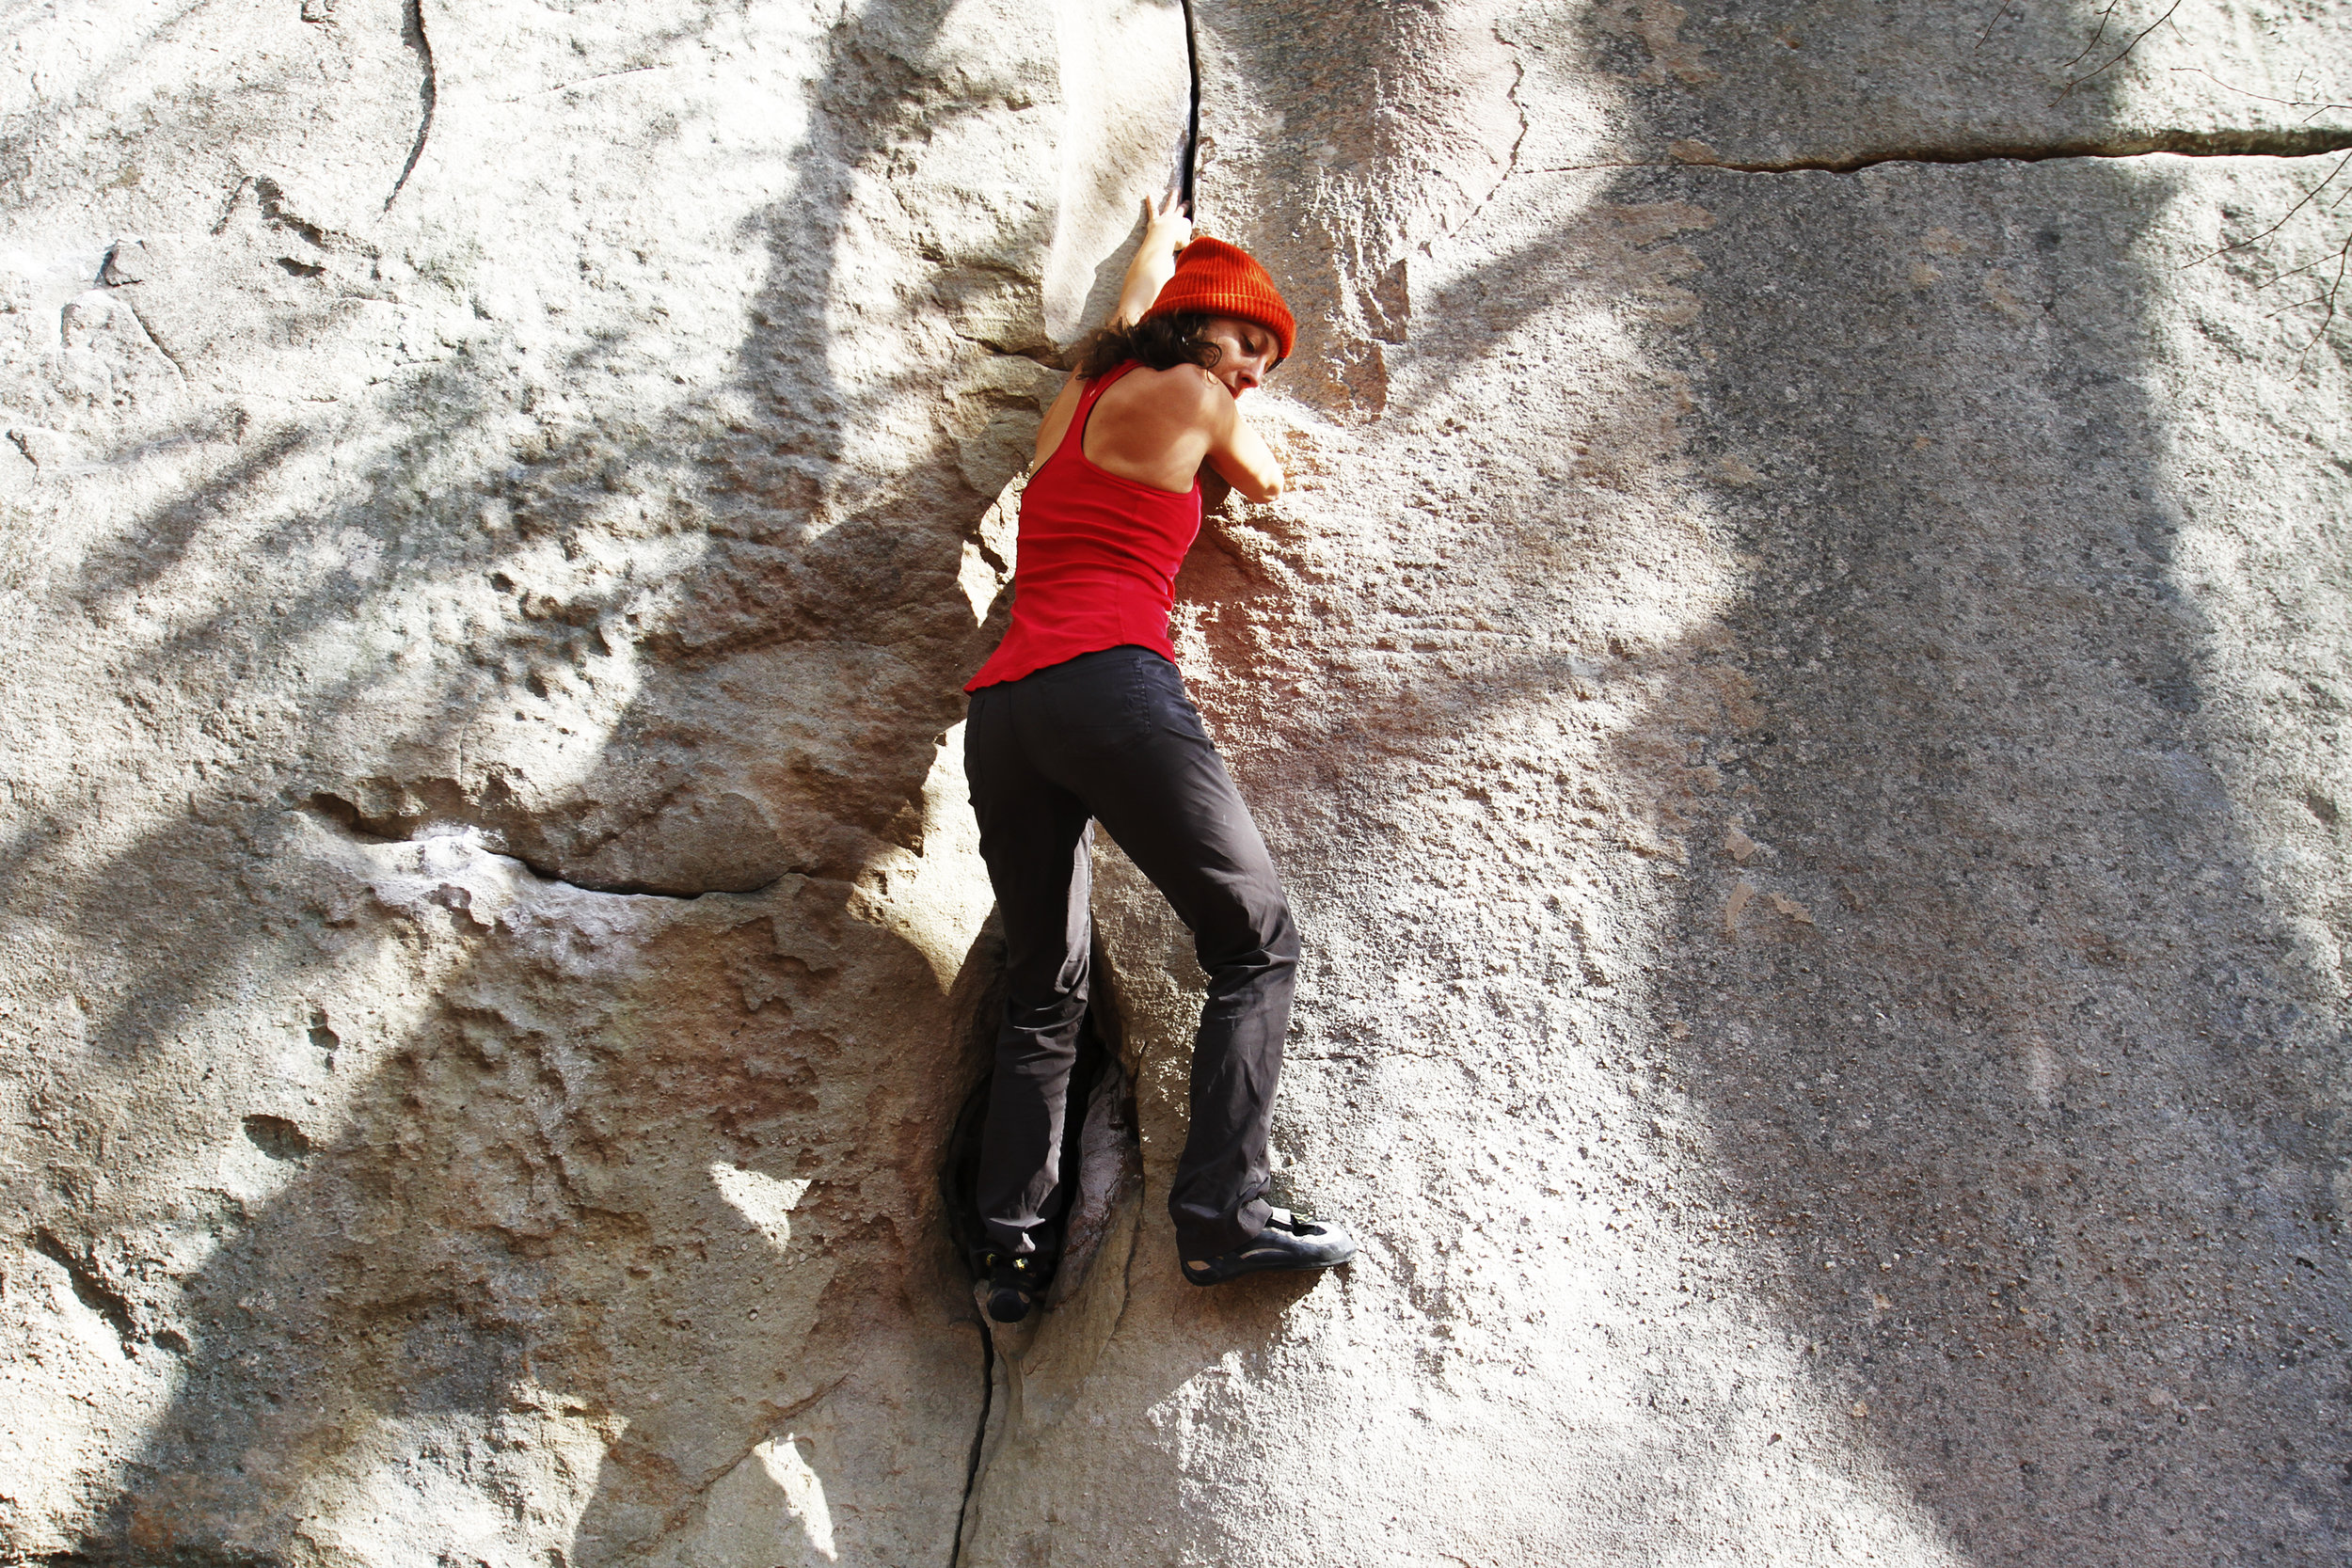 Theresa D'Aquila utilizes her trad climbing skills on Crack of Doom, V5.